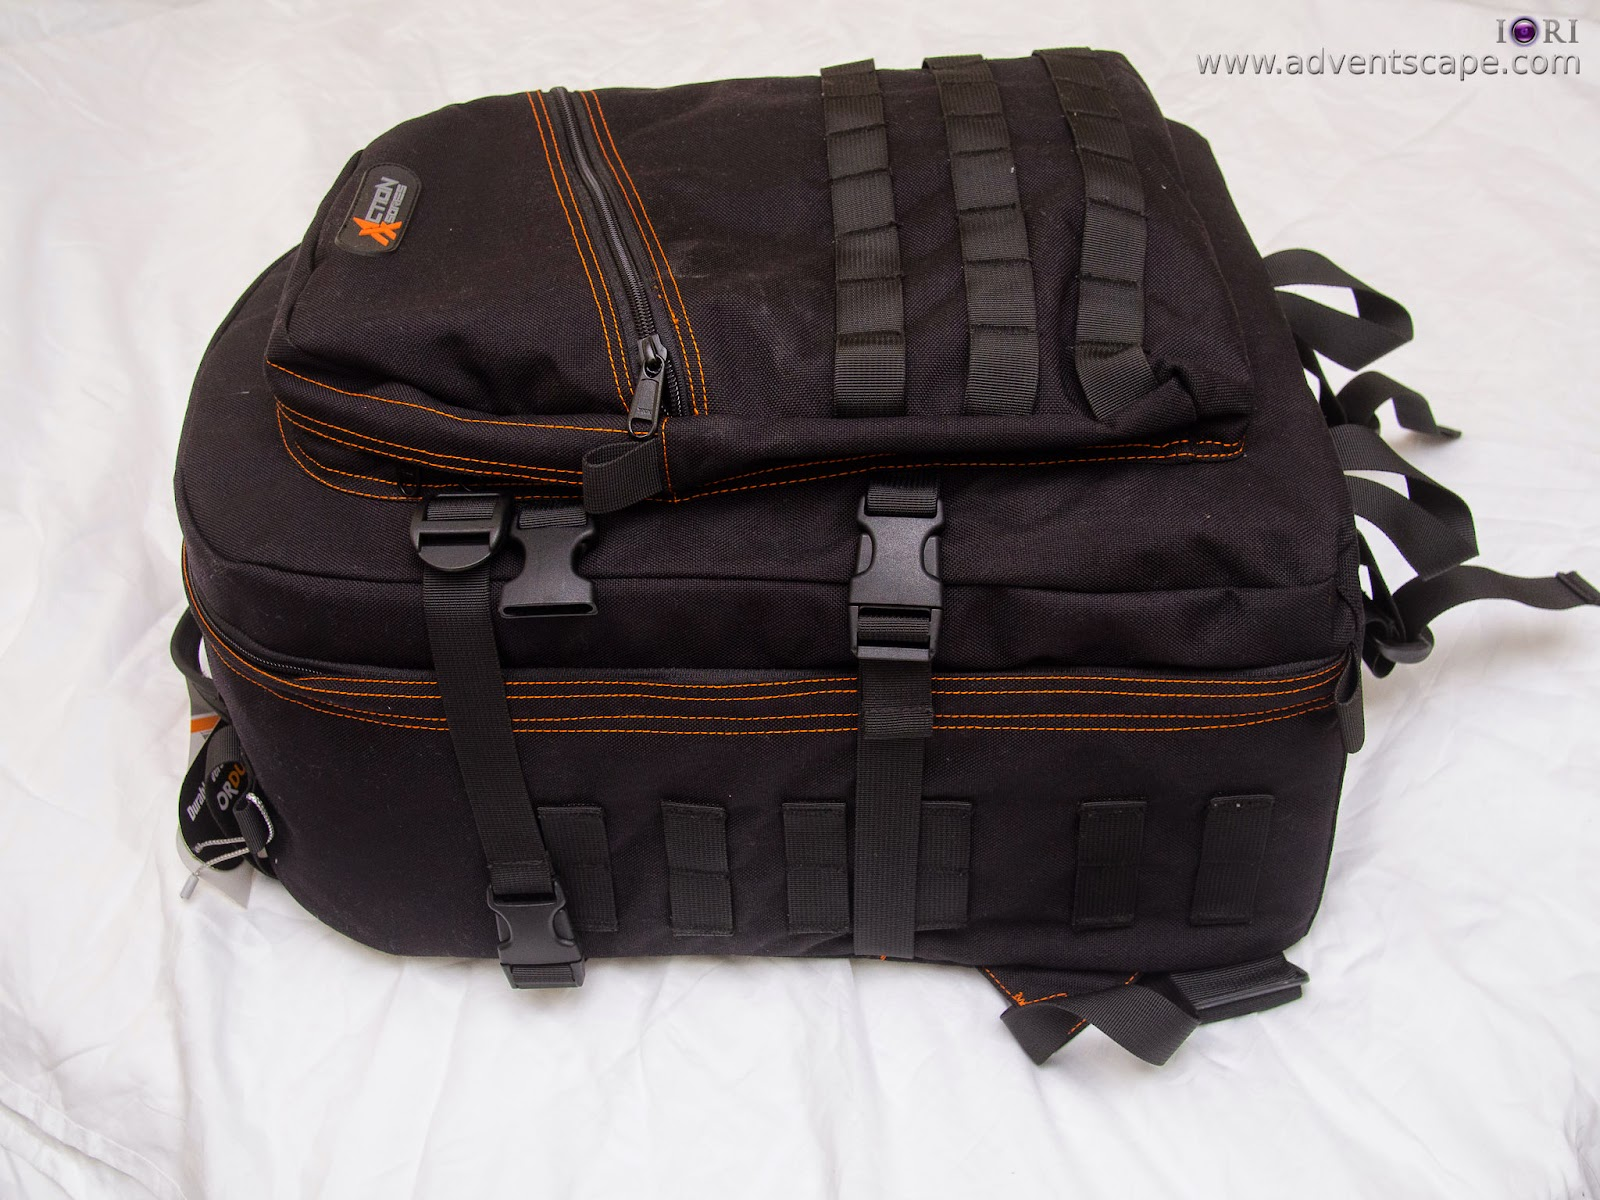 Philip Avellana, iori, adventscape, australia landscape photographer, backpack, bag, DJI, drone, Phantom, zenmuse, h3 3d, quadcopter, multi rotor, action xsories, compartment, foaming Inside Compartment of Action Xsories